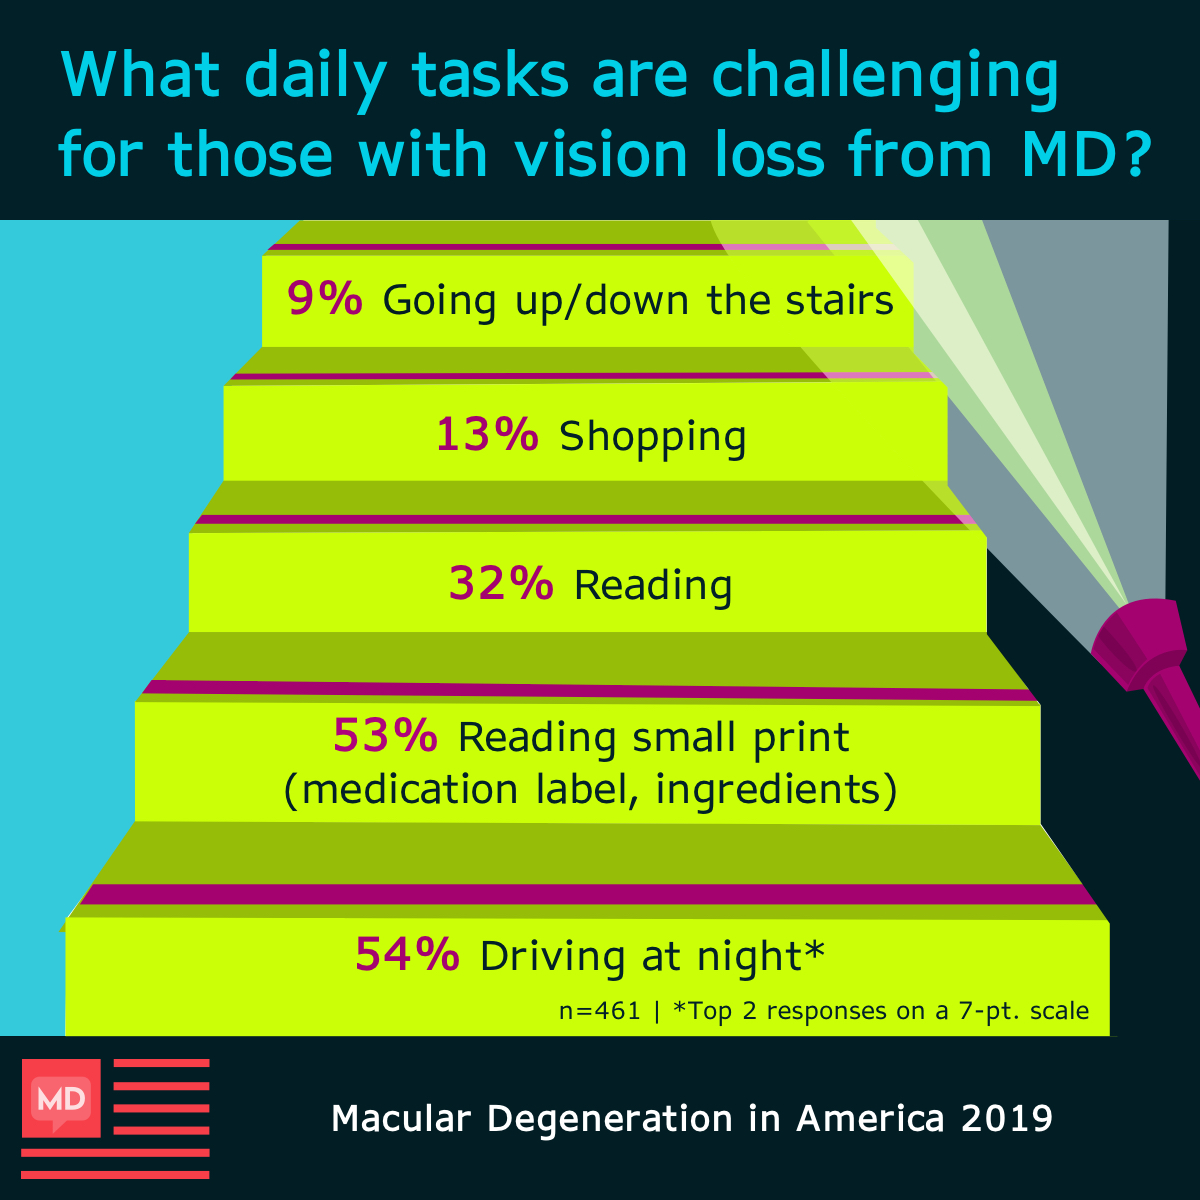 Survey respondents said driving at night and reading small print were the most challenging daily activities.